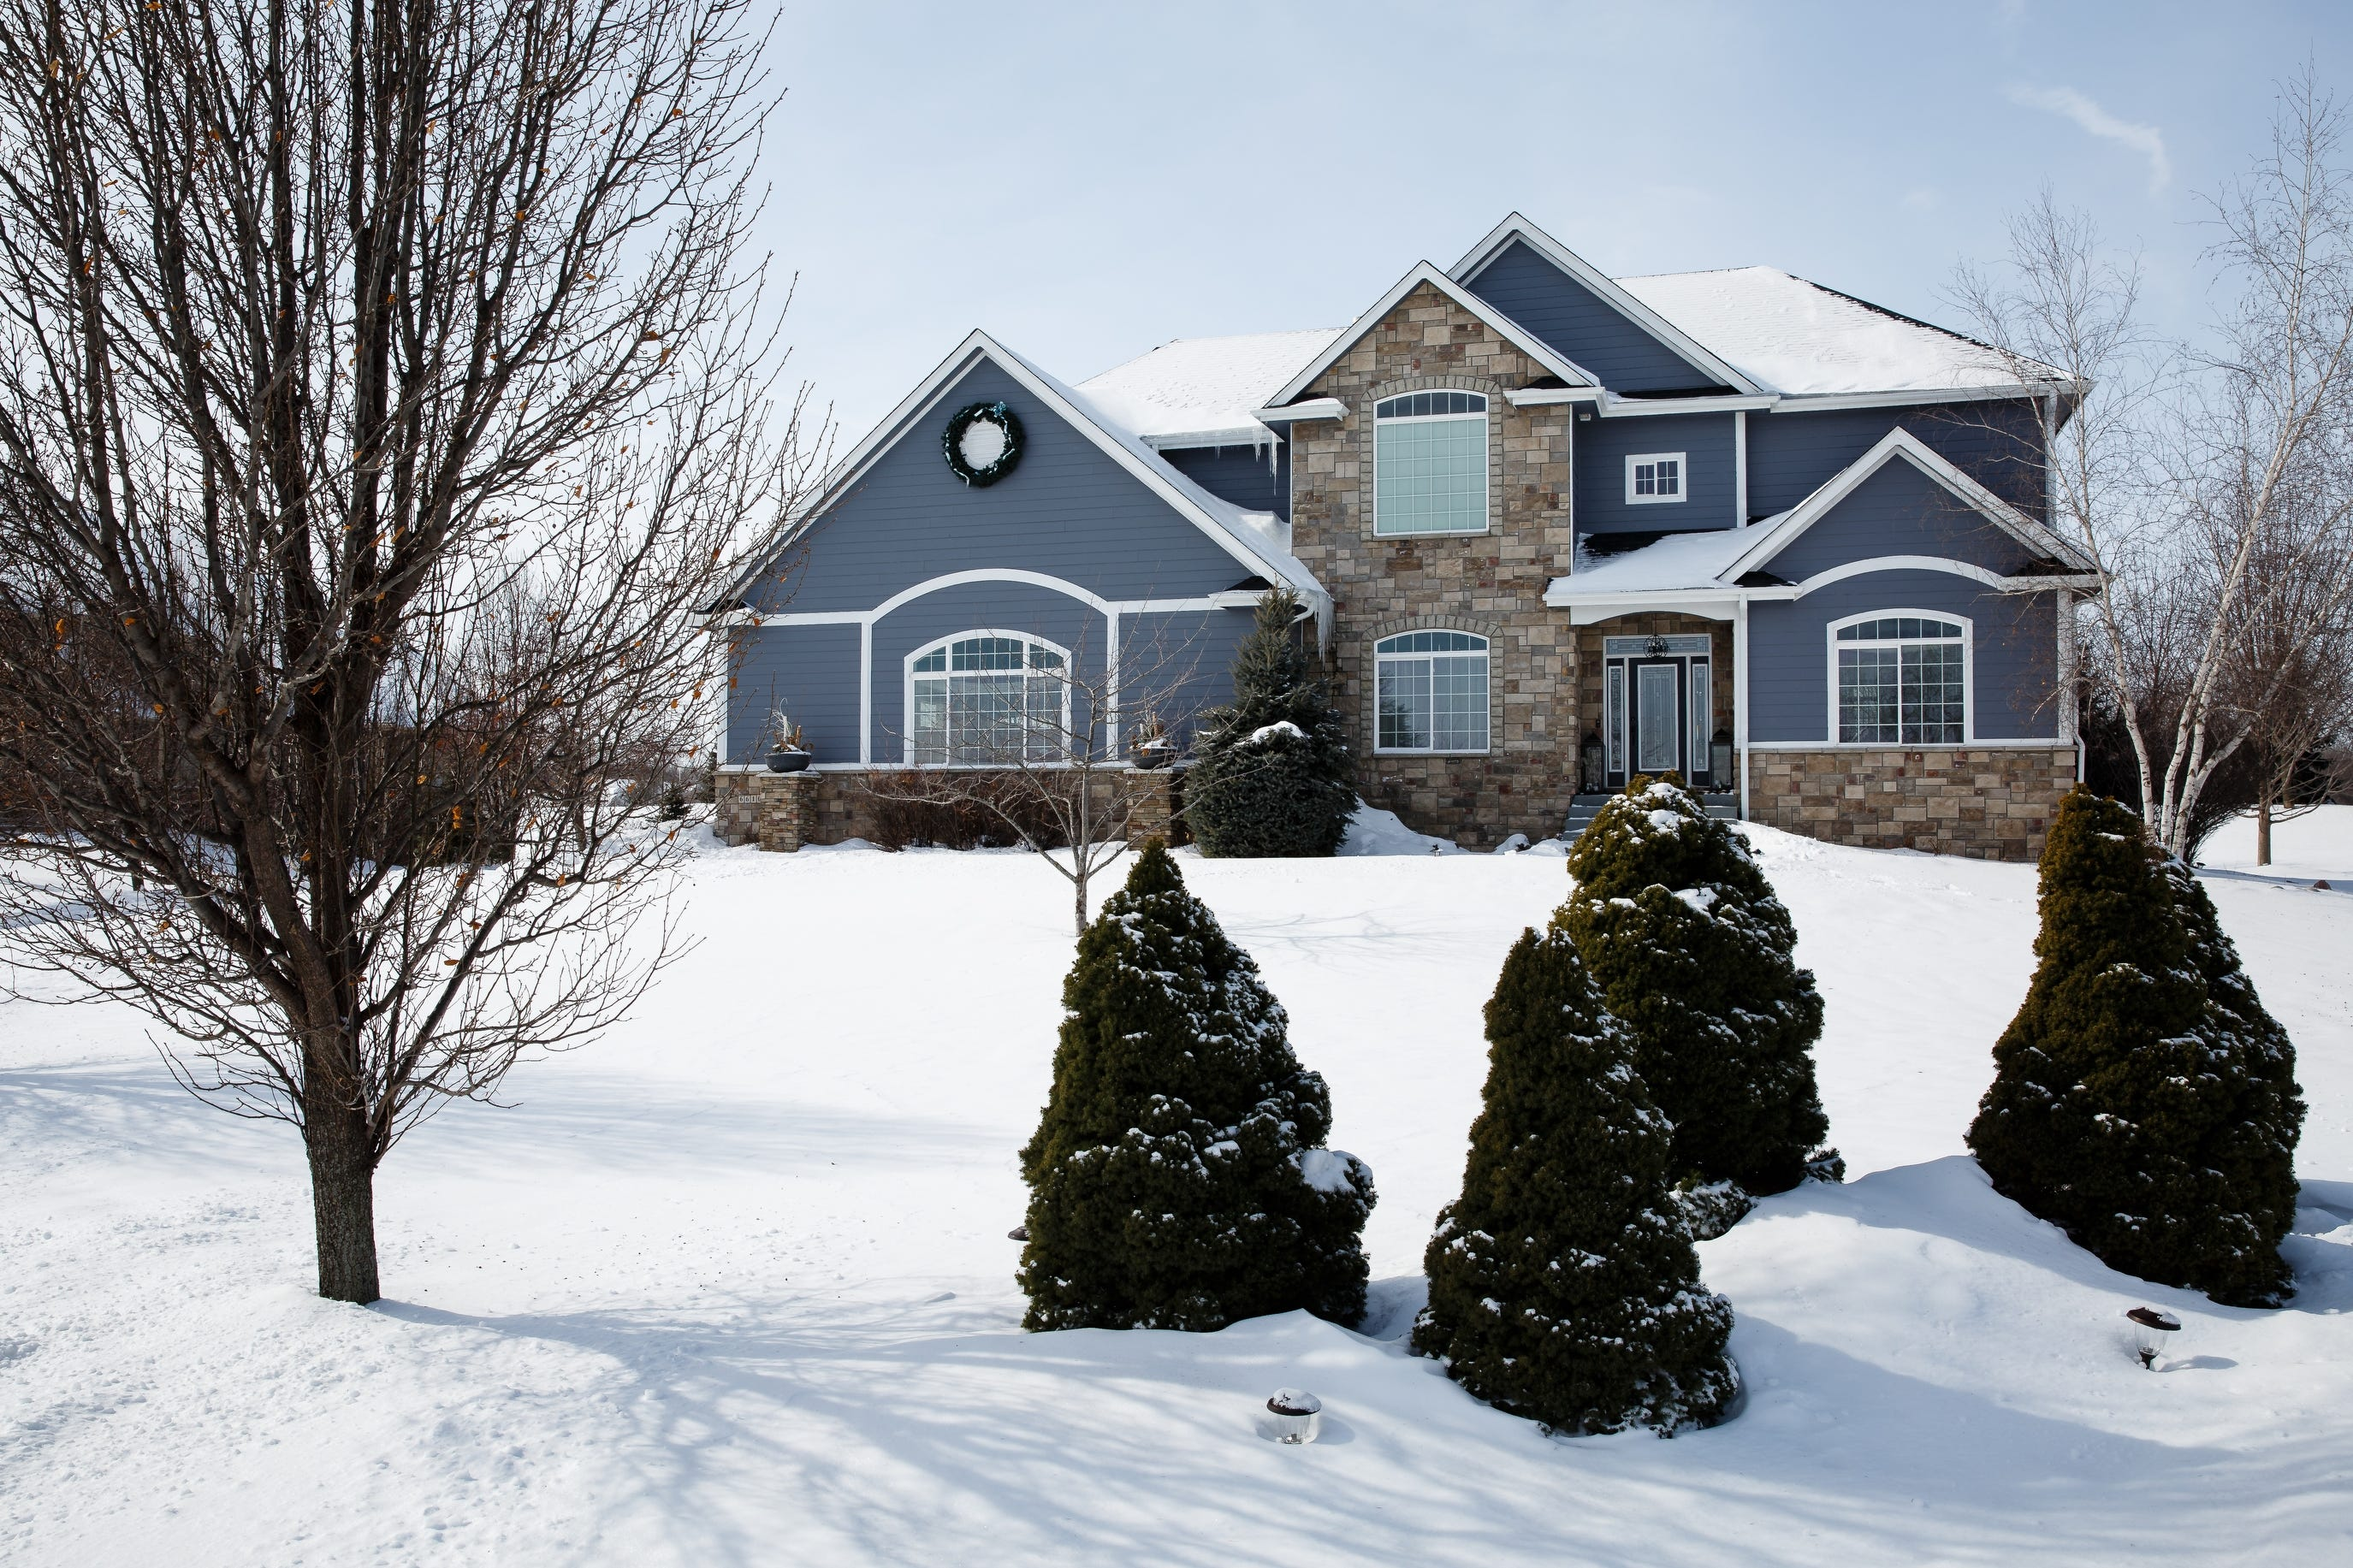 The home of Trina and Michael Mazza on Wednesday, Feb. 27, 2019 in Johnston. The couple ran an unregistered day care out of their home and Police found an unresponsive child at their home on February 15. The couple is also accused of taking the money from one of their mothers for months during the fall of 2018.